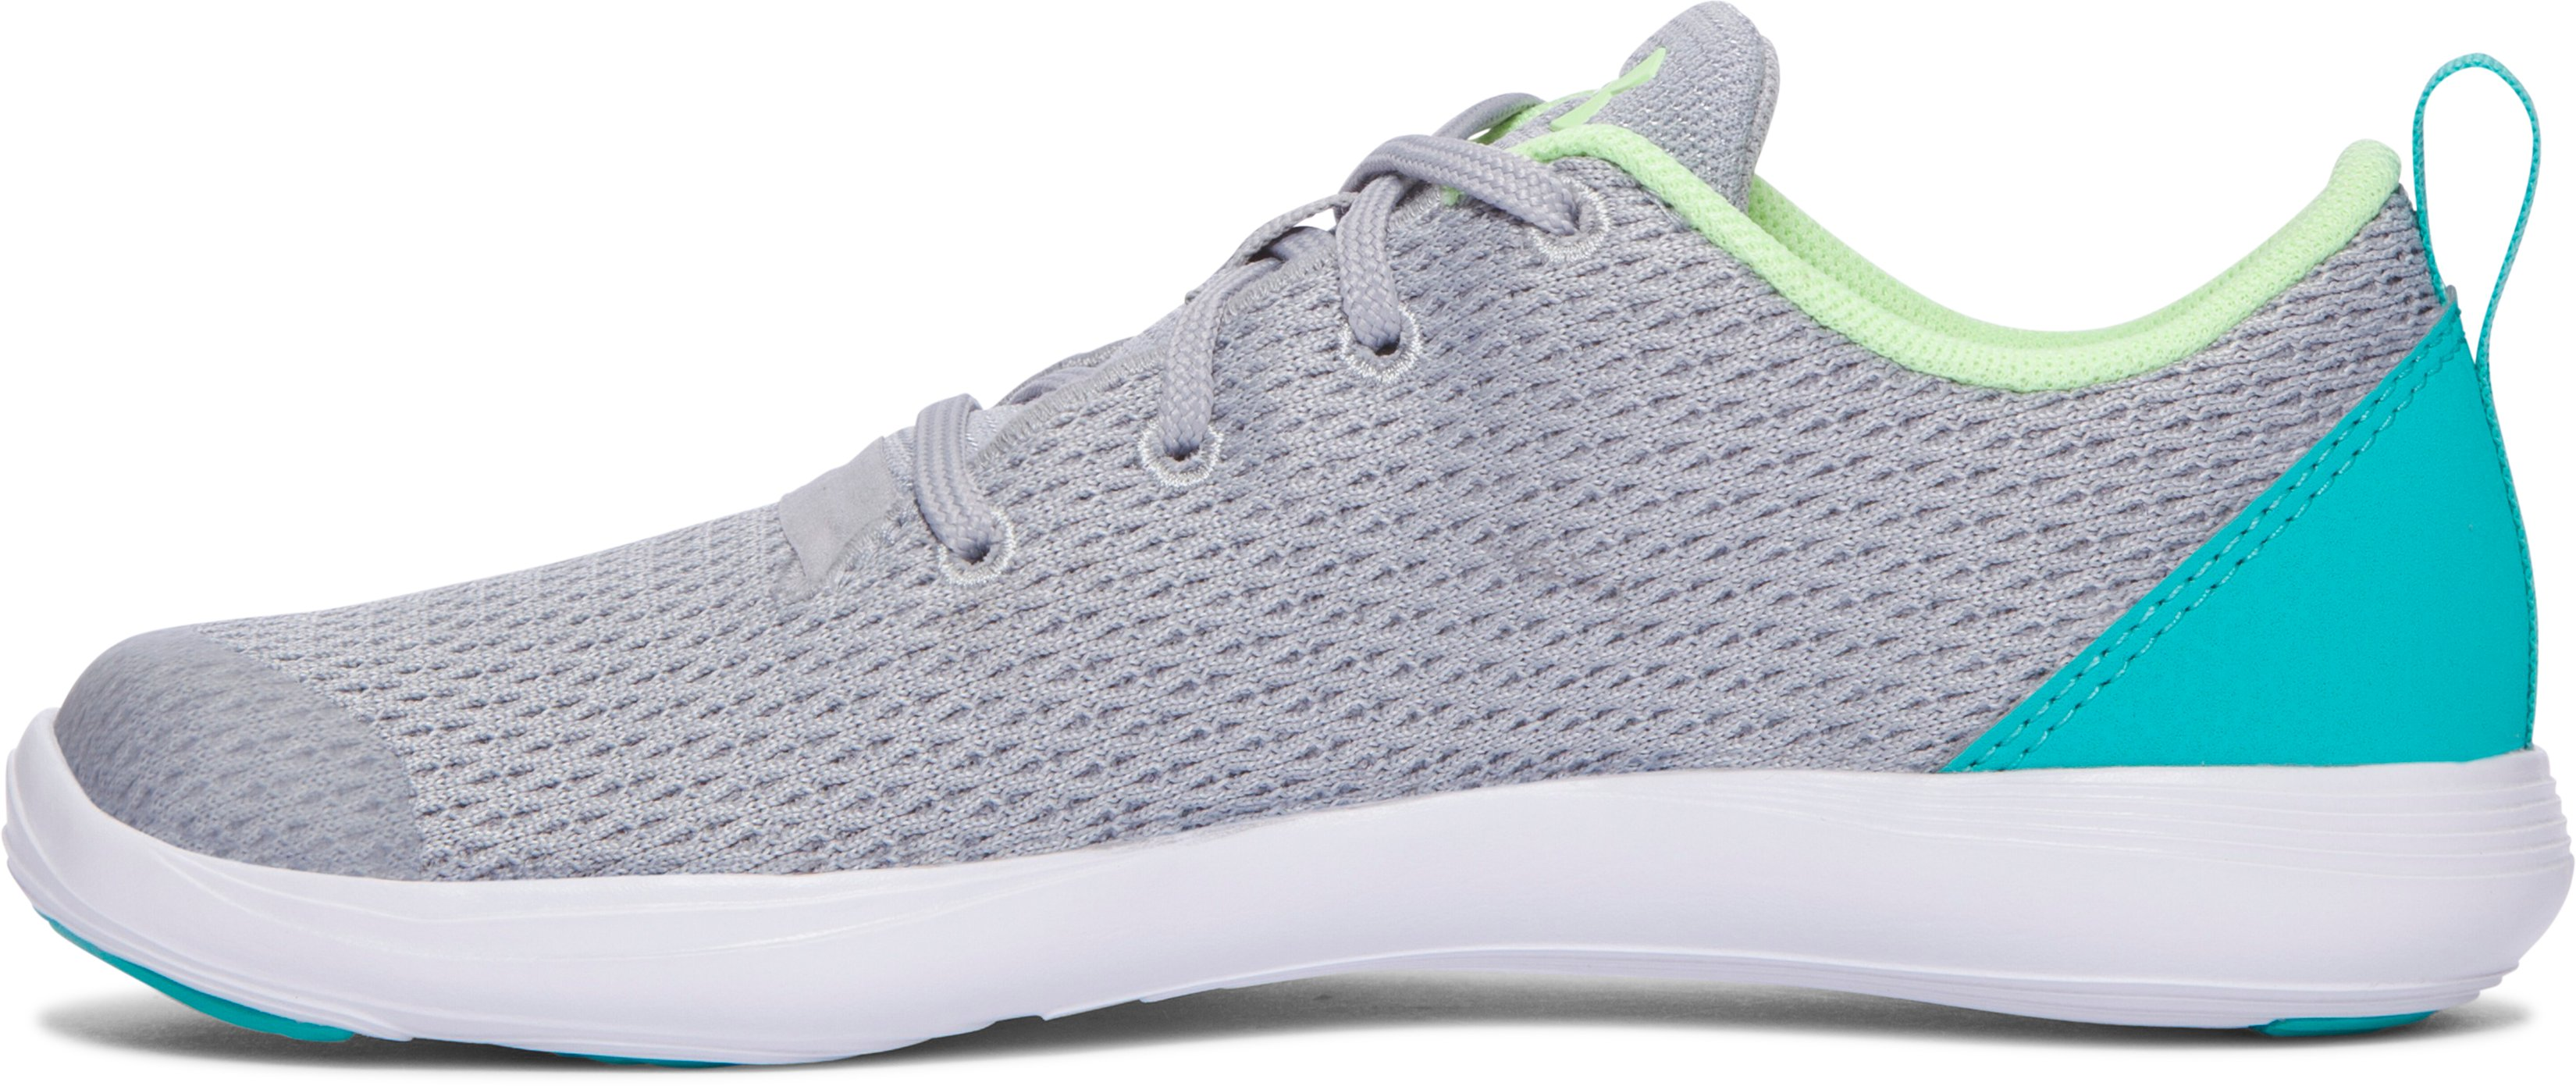 Girls' Pre-School UA Street Precision Sport Low Shoes, OVERCAST GRAY